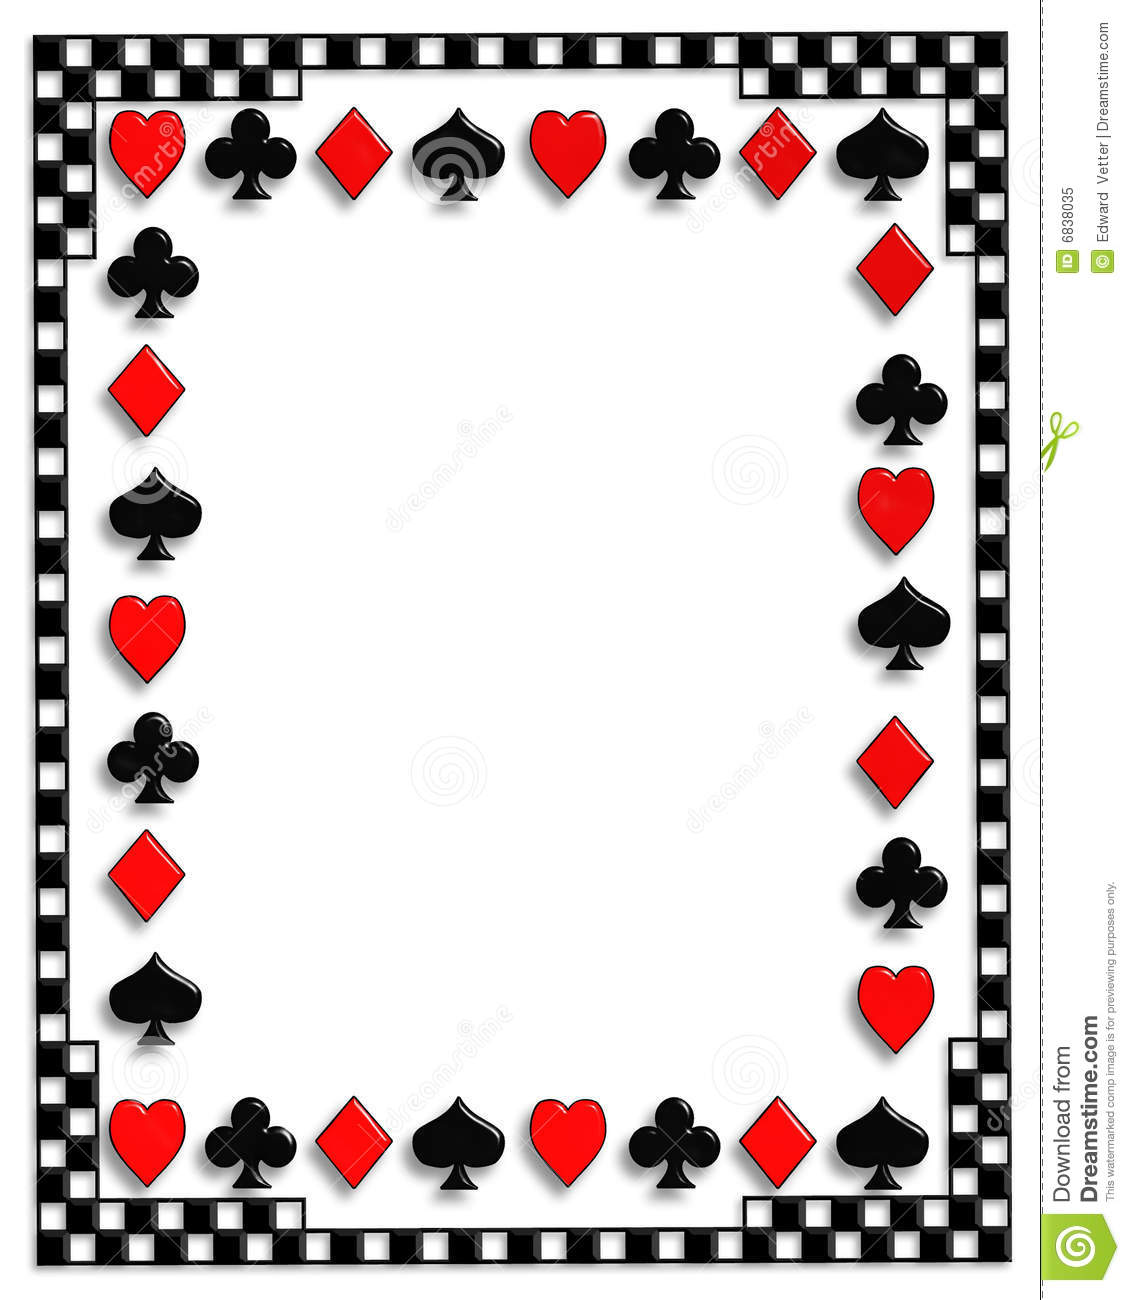 Playing Cards Border Poker Suits Royalty Free Stock Photo - Image ...